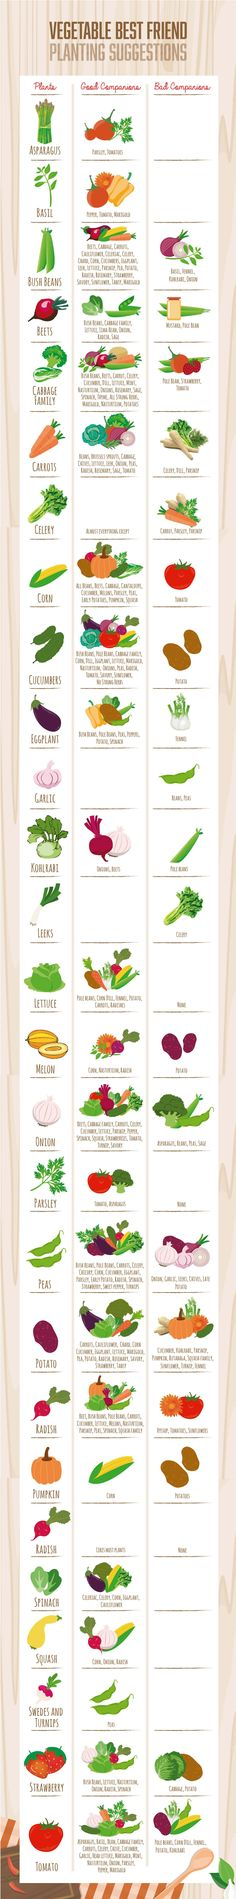 Learn more about companion planting for tomatoes, potatoes, cucumbers and more vegetables in this infographic chart.